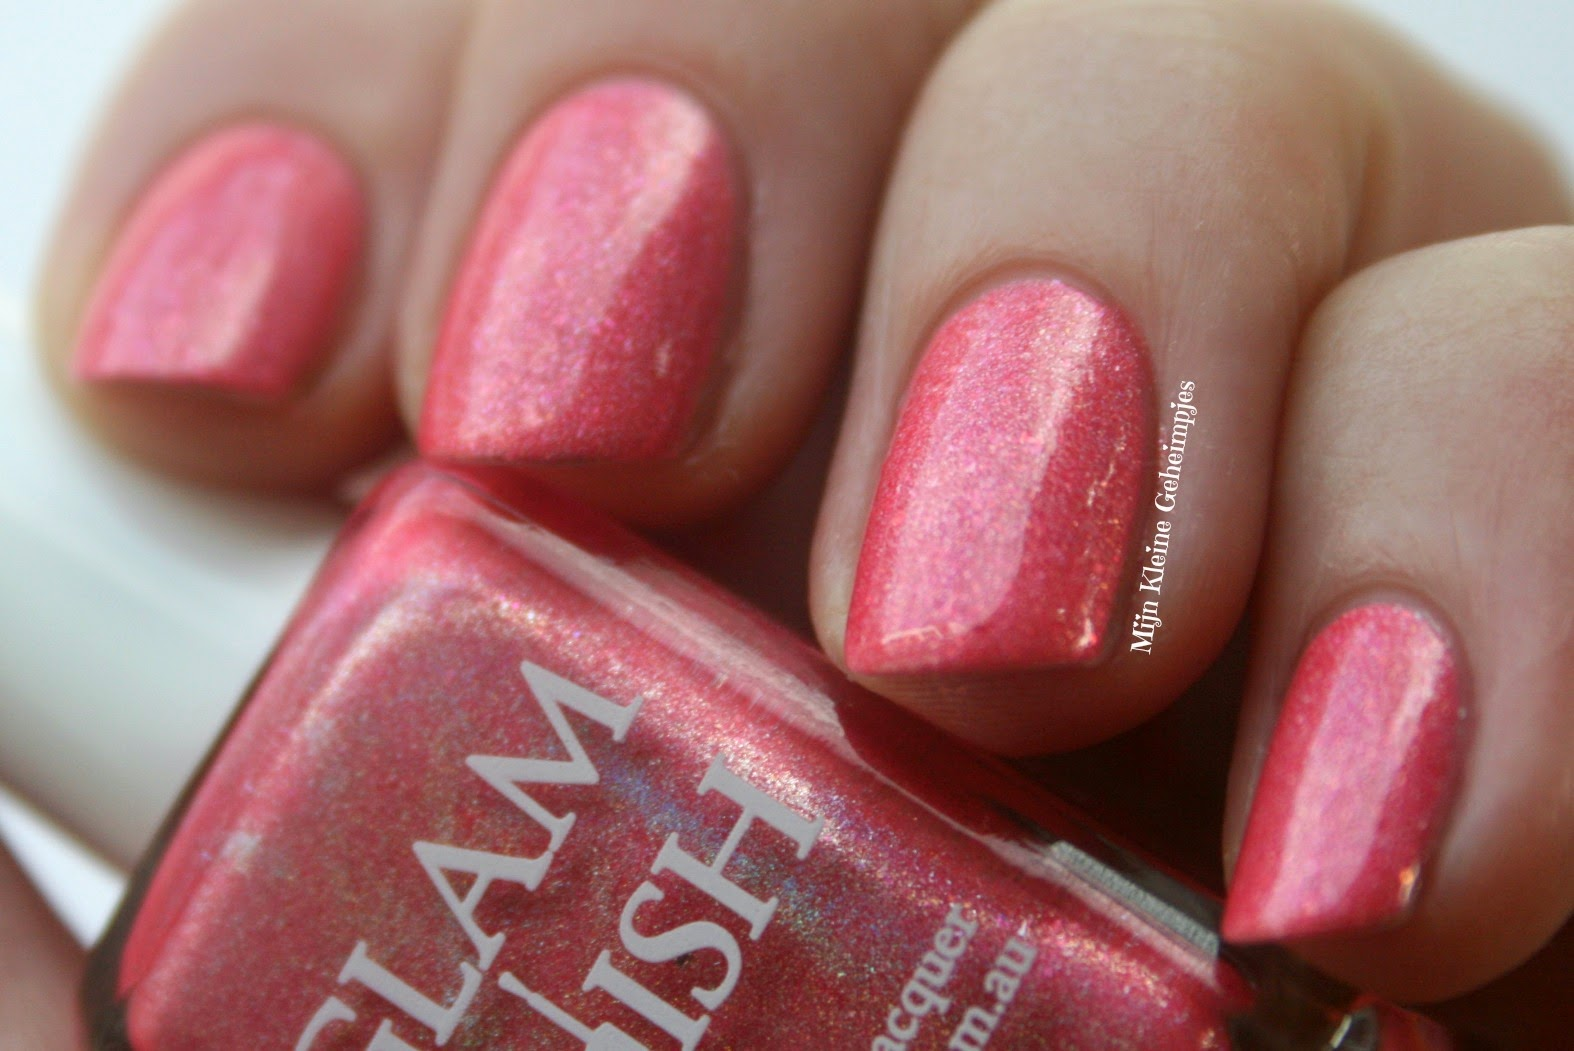 Glam Polish New Girl In Town